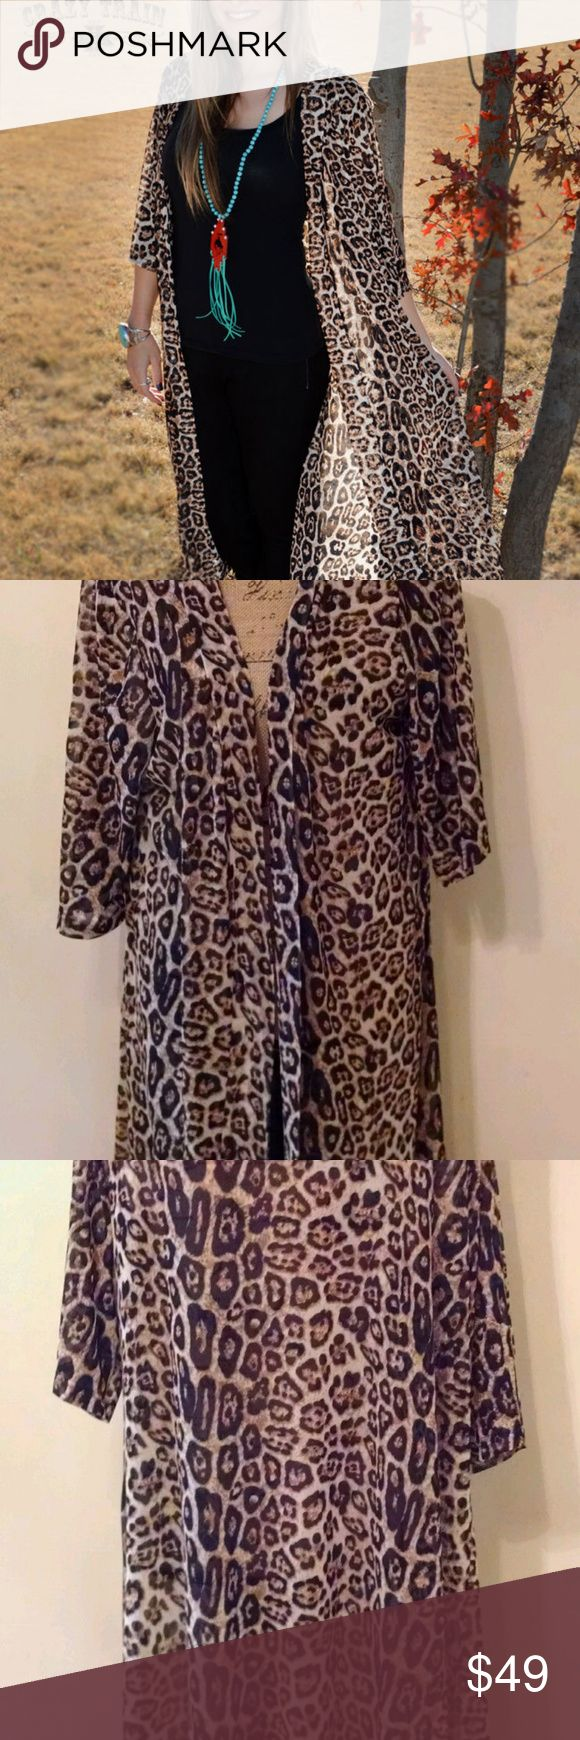 "Crazy Train Clothing Dixie Duster Long Sm-Large Crazy Train Clothing Dixie Duster Long Cheetah Southwestern Boho Sizes Small-Large  Boho, Southwestern style. Sheer, however heavier fabric. Long Southwestern boho style.  Please pay close attention to measurements rather than size. Sizing may not be ""typical"" of standard sizing. Laid flat-Chest (armpit to armpit) Chest 17"", Sleeves 18"", Length 42""  We are an authorized retailer of Crazy Train items. If you don't find it in our store, we will…"